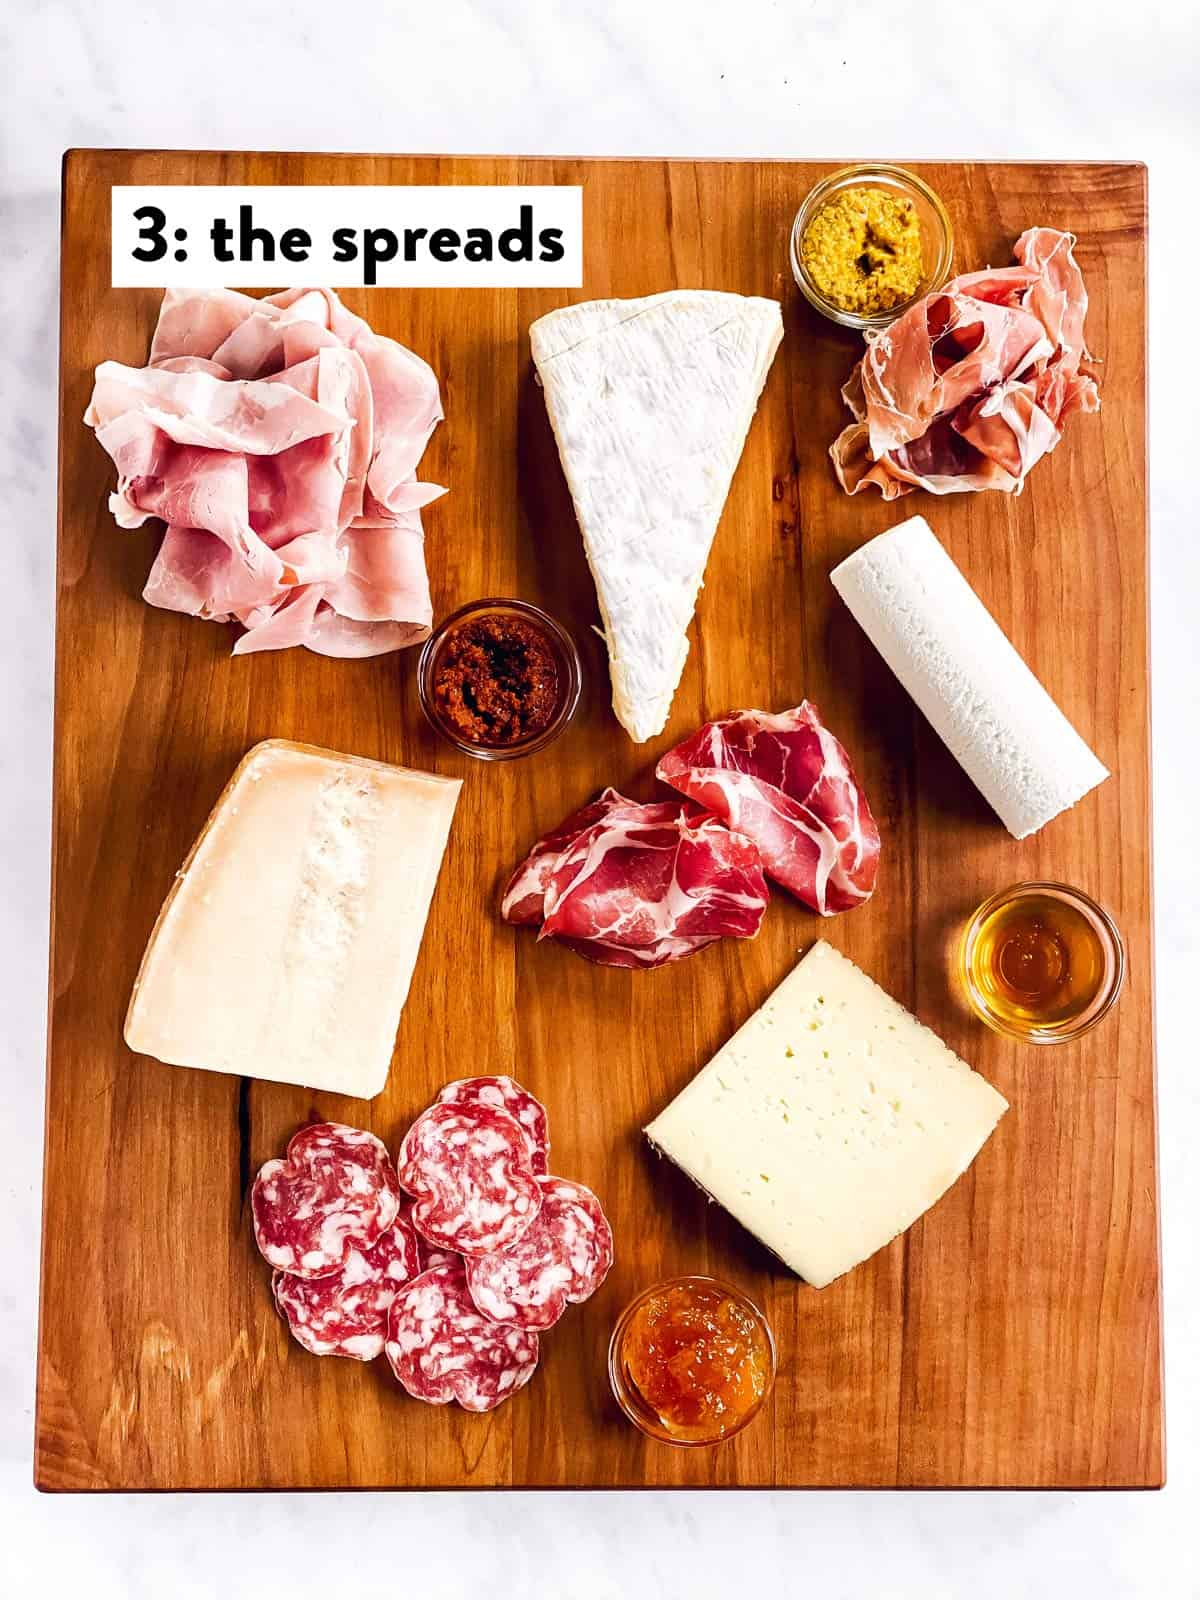 four types of cheese, cold cuts and spreads on a wooden board